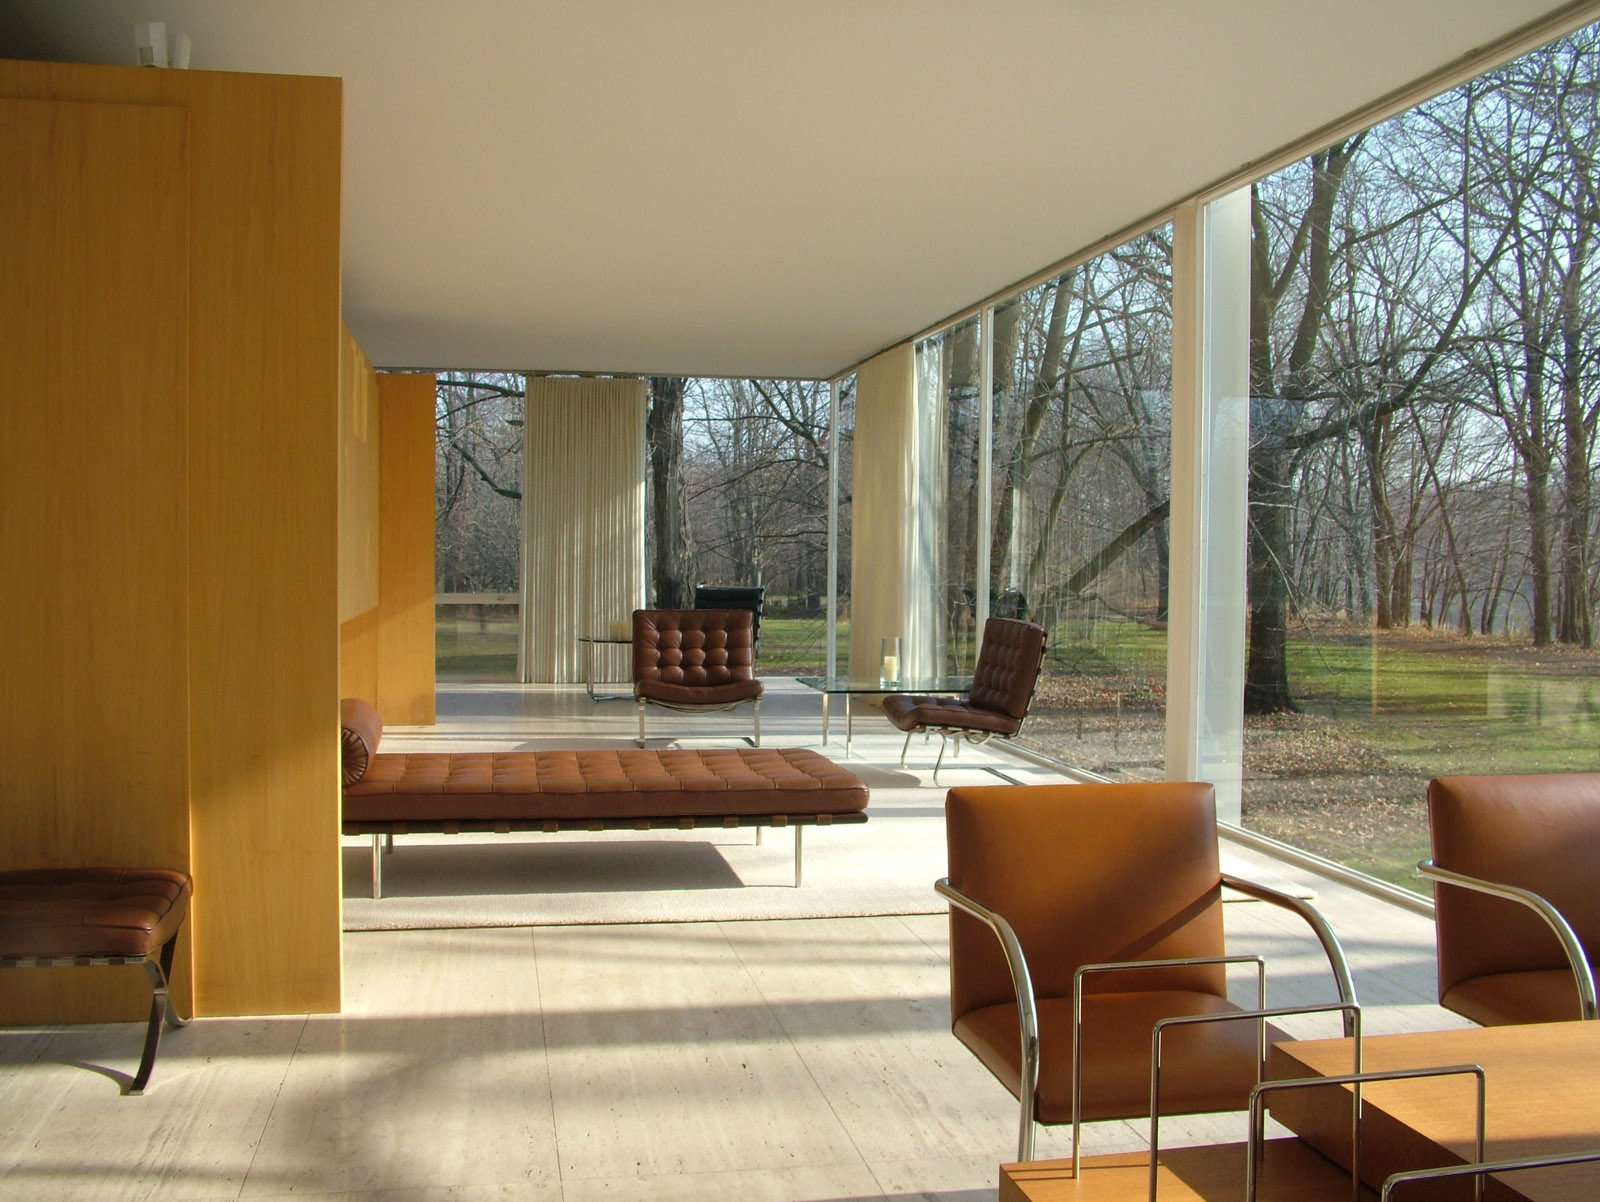 Unique Design: The Renowned Farnsworth House by Mies Van der Rohe